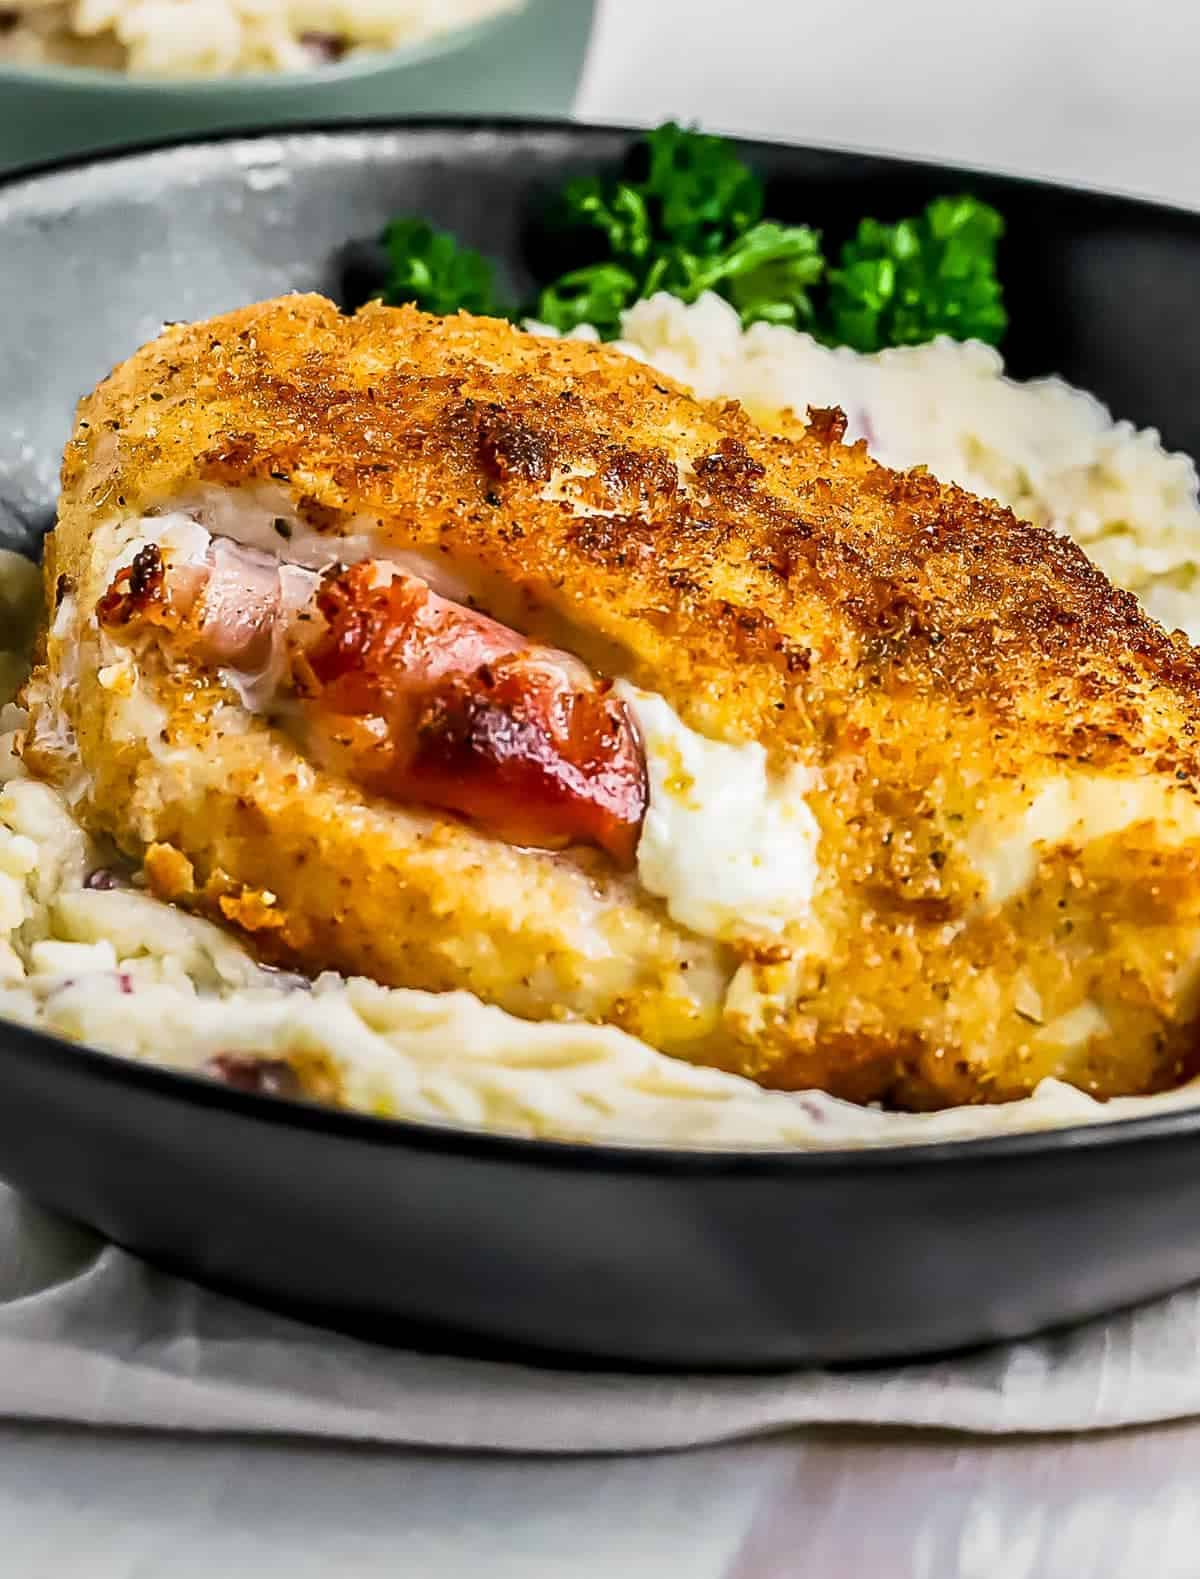 Prosciutto and Cheese Stuffed Chicken Breast over mashed potatoes in bowl